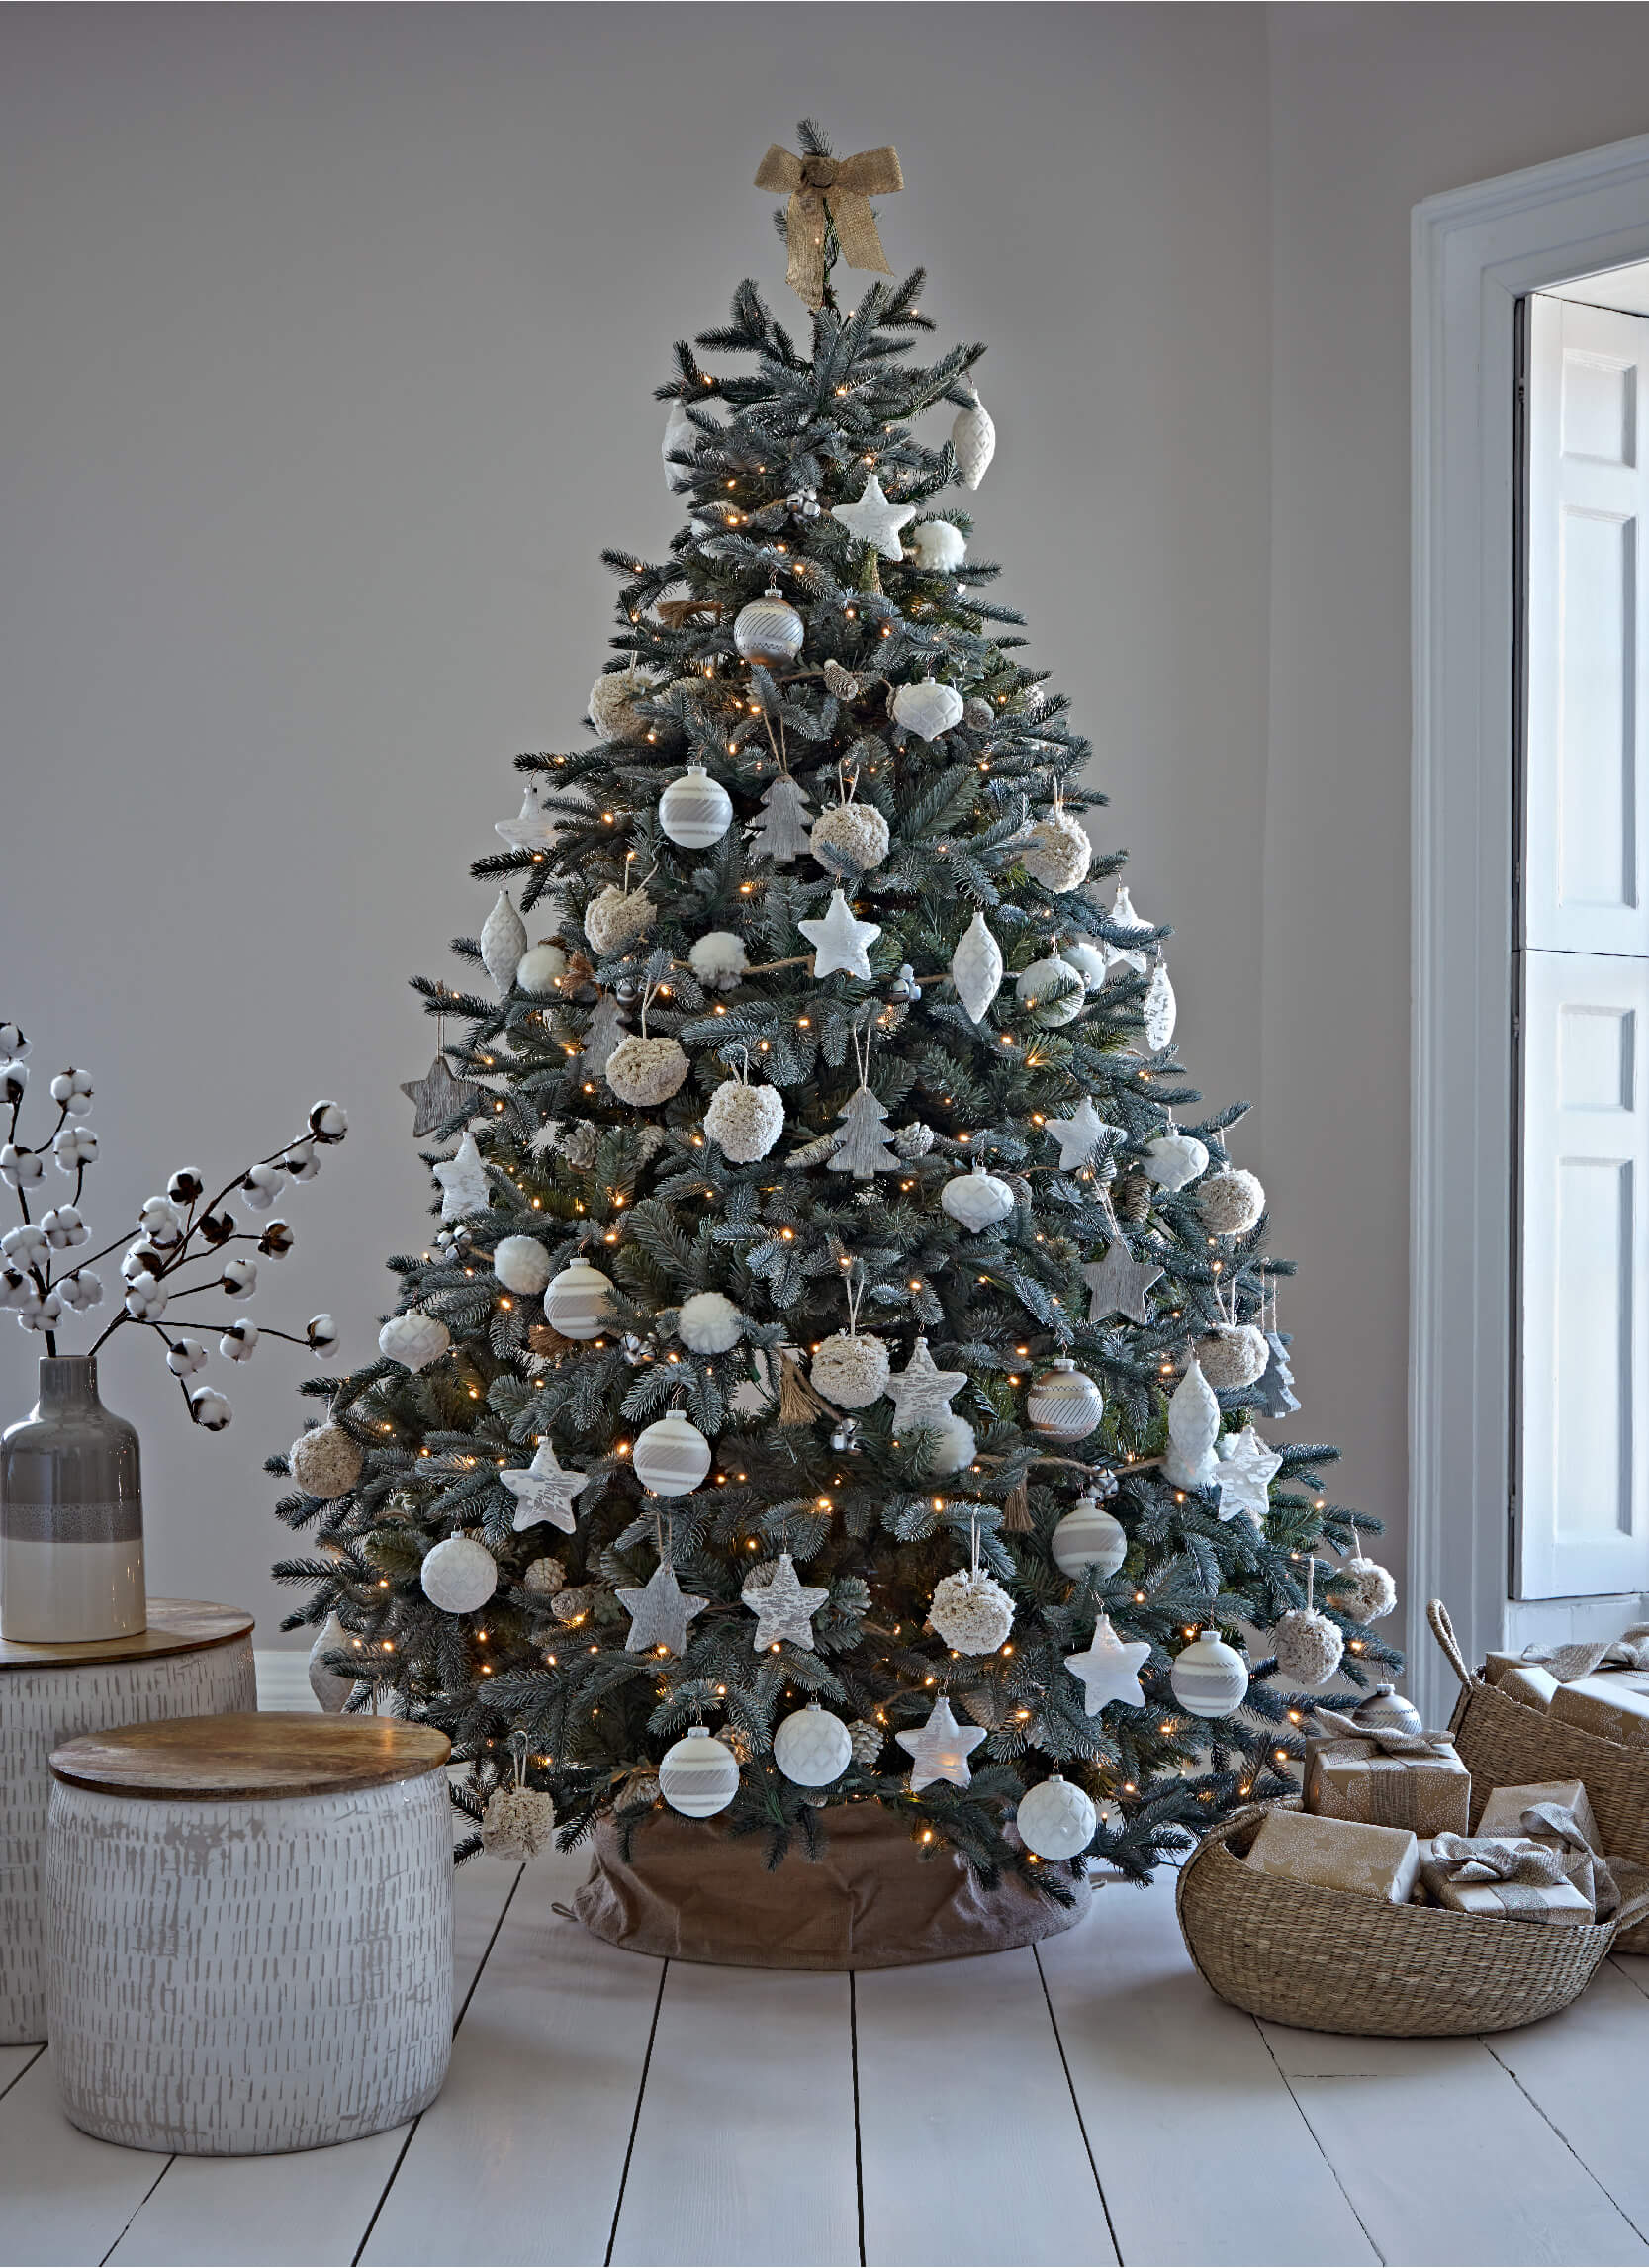 How To Dress Your Christmas Tree, With Cox & Cox - The ...